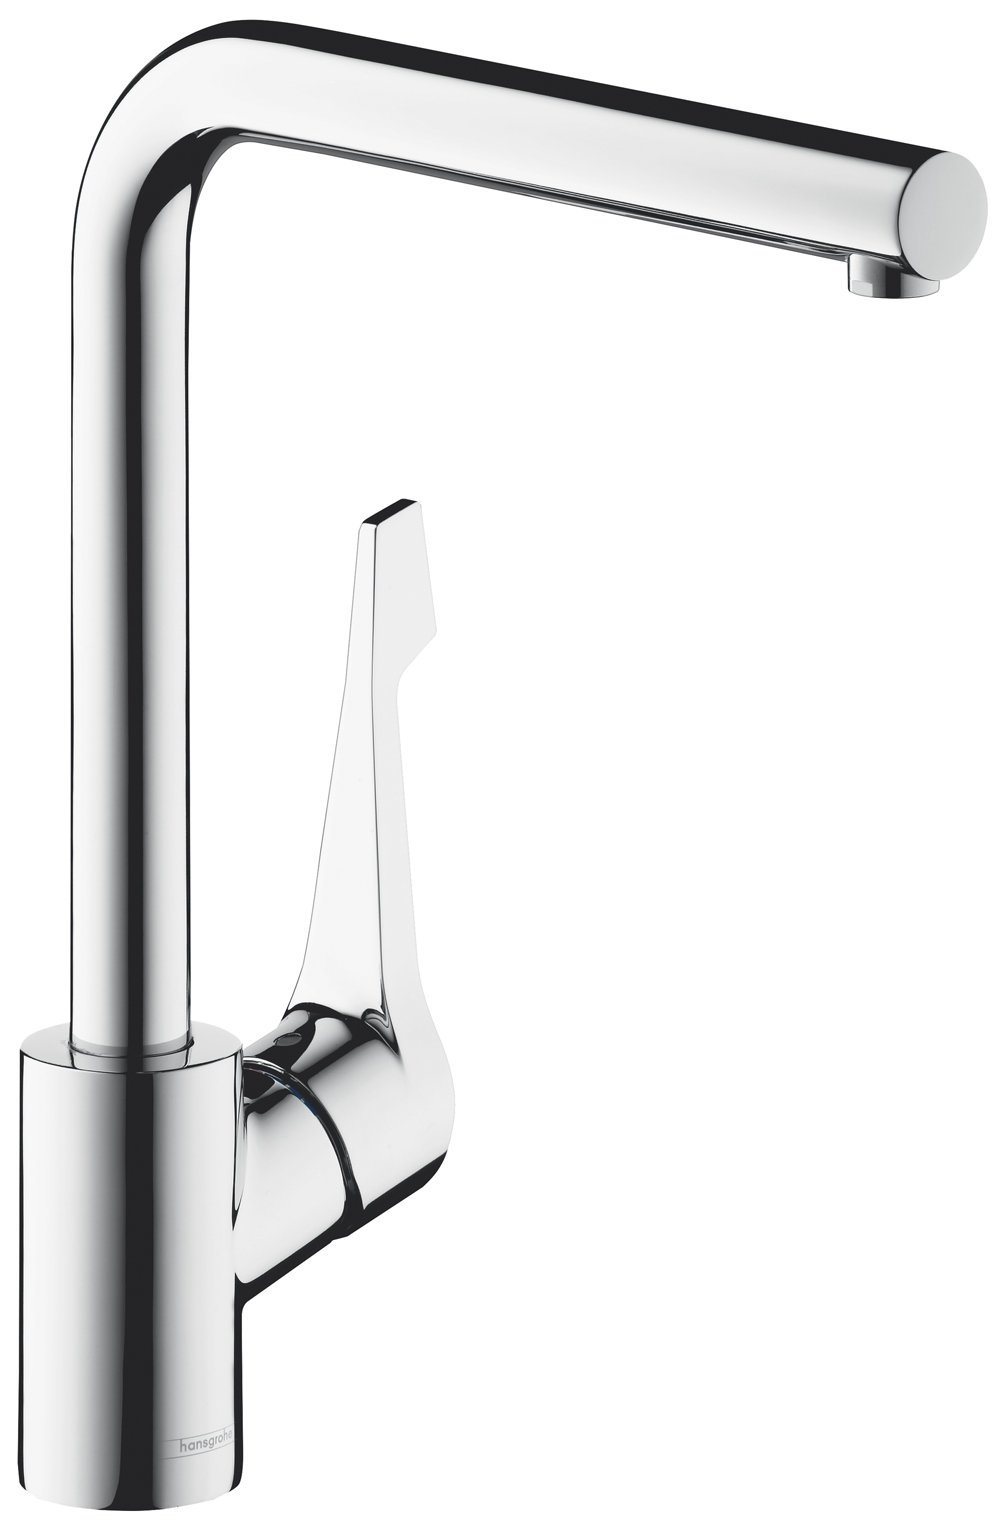 Hansgrohe 14802003 Cento Square L Right Angle Mixer | Appliances Online